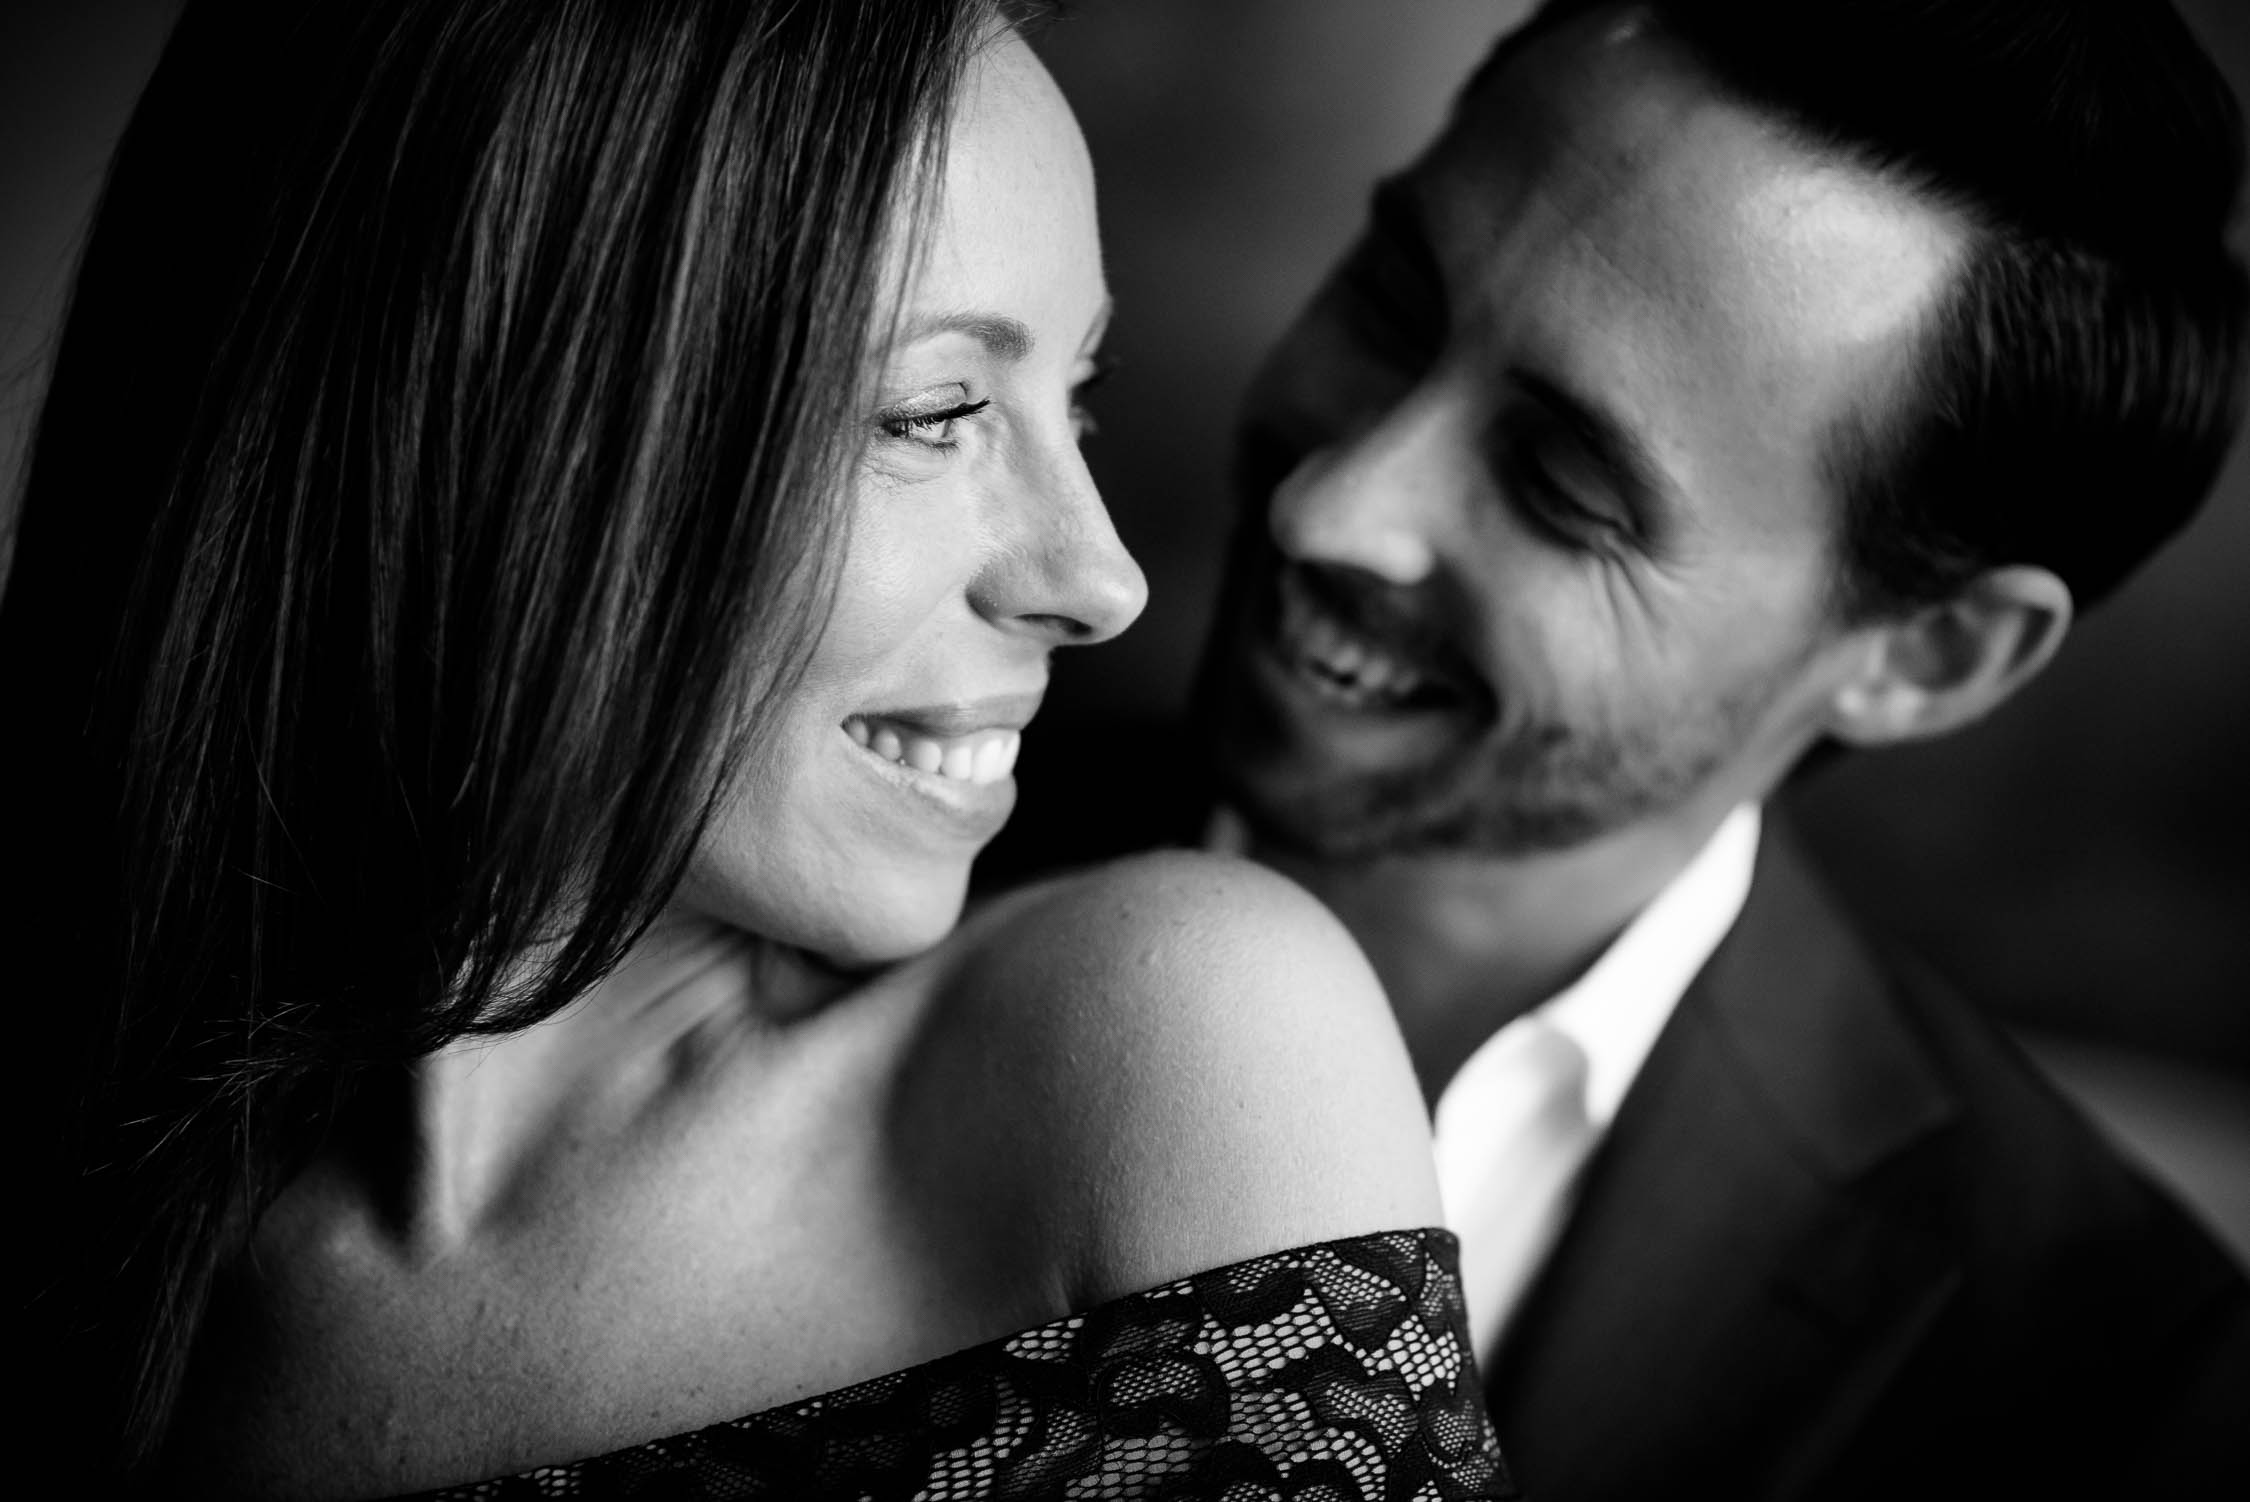 Chicago engagement session inside the Langham Chicago Hotel.